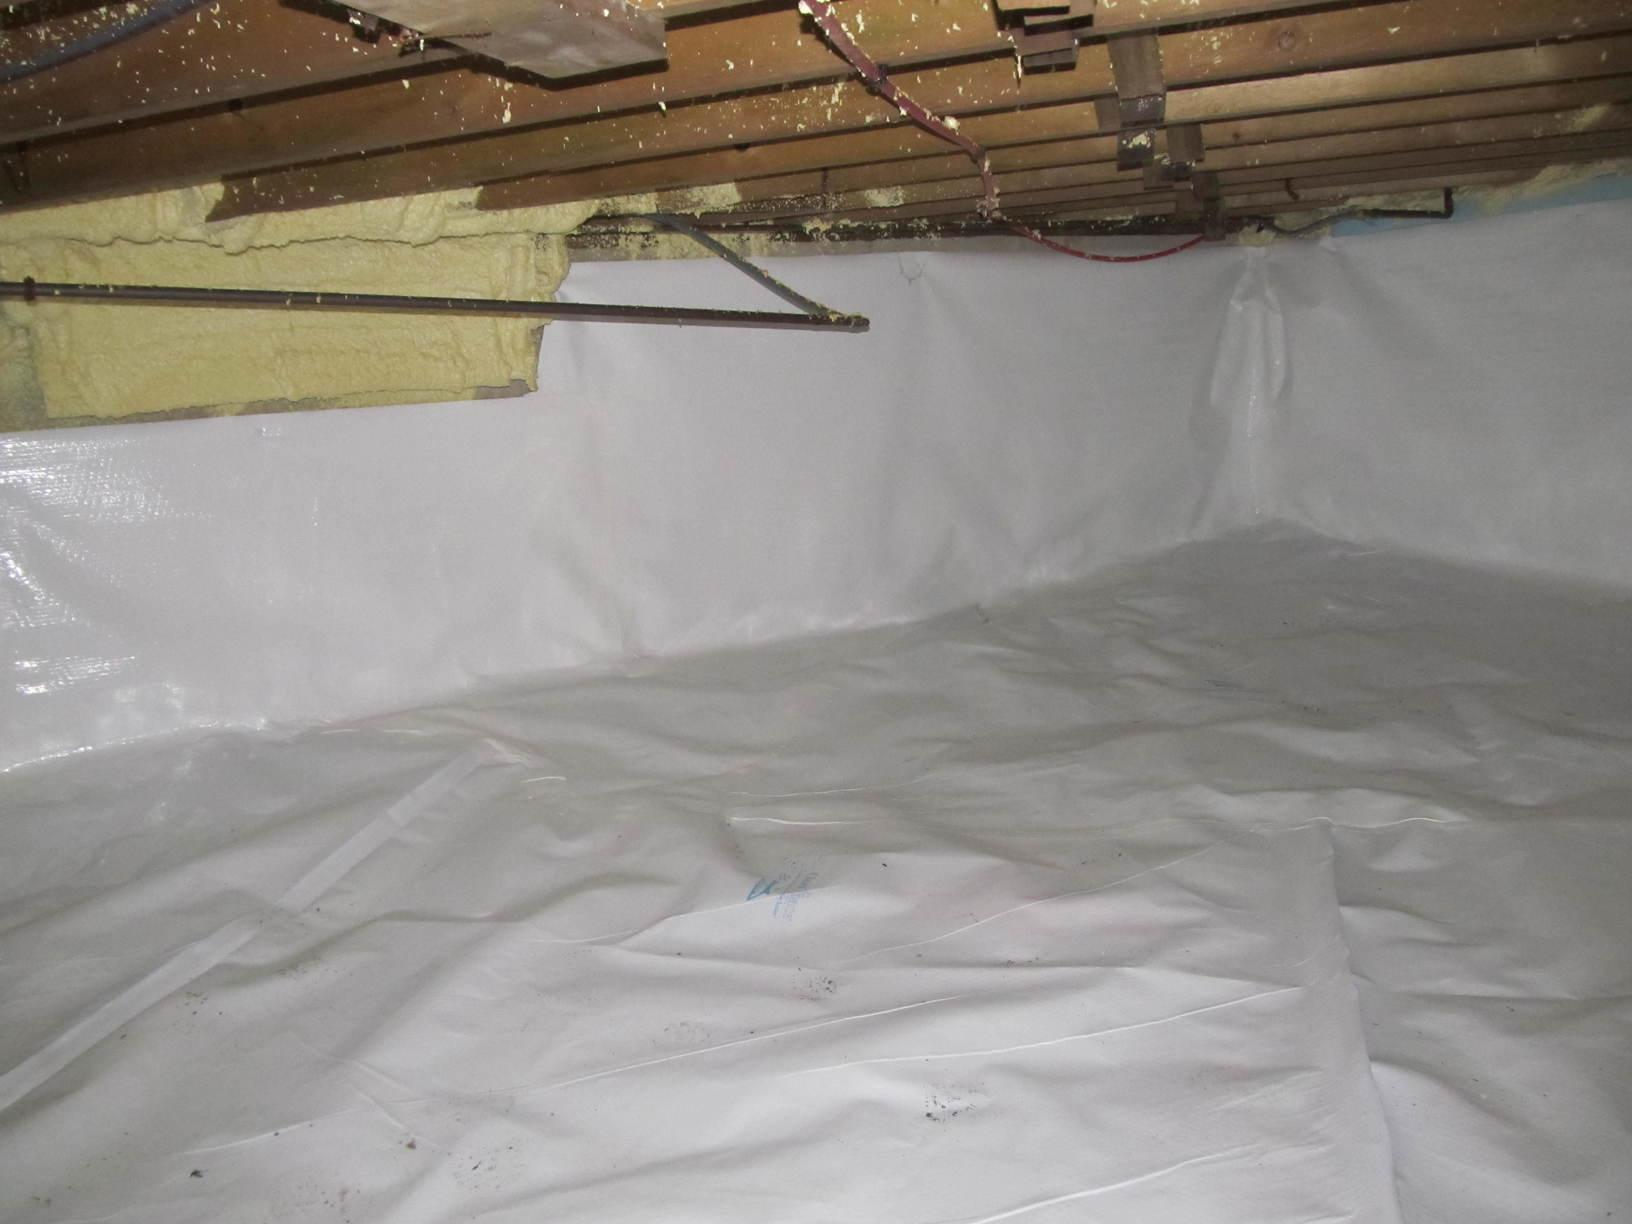 Wet Crawl Space Transformed in North Hampton, NH - After Photo